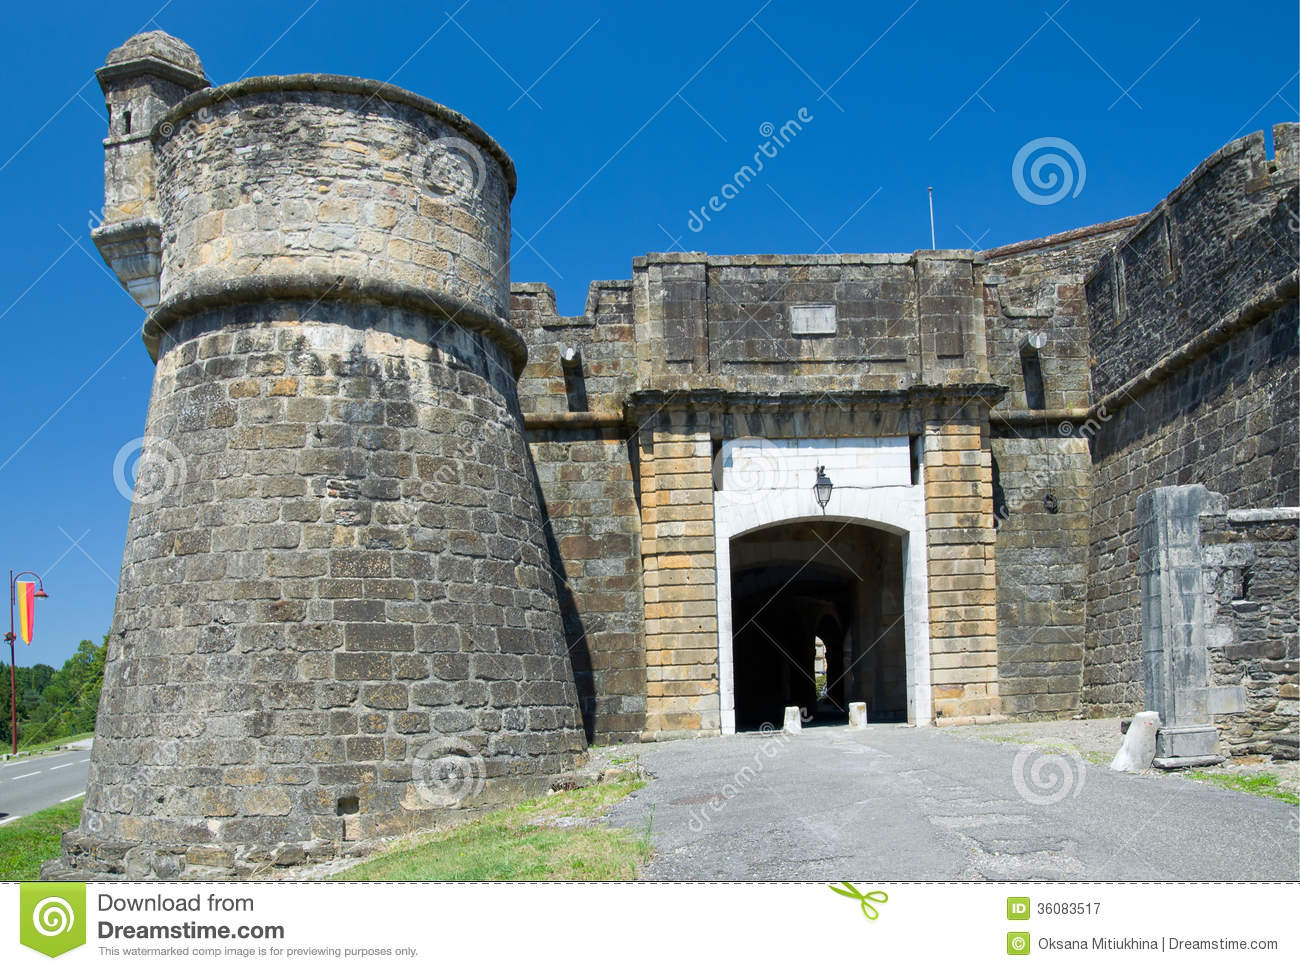 PHOTOS - Carcassonne Fortified City in France - XarJ Blog ... |Uzziahs Fortified Cities